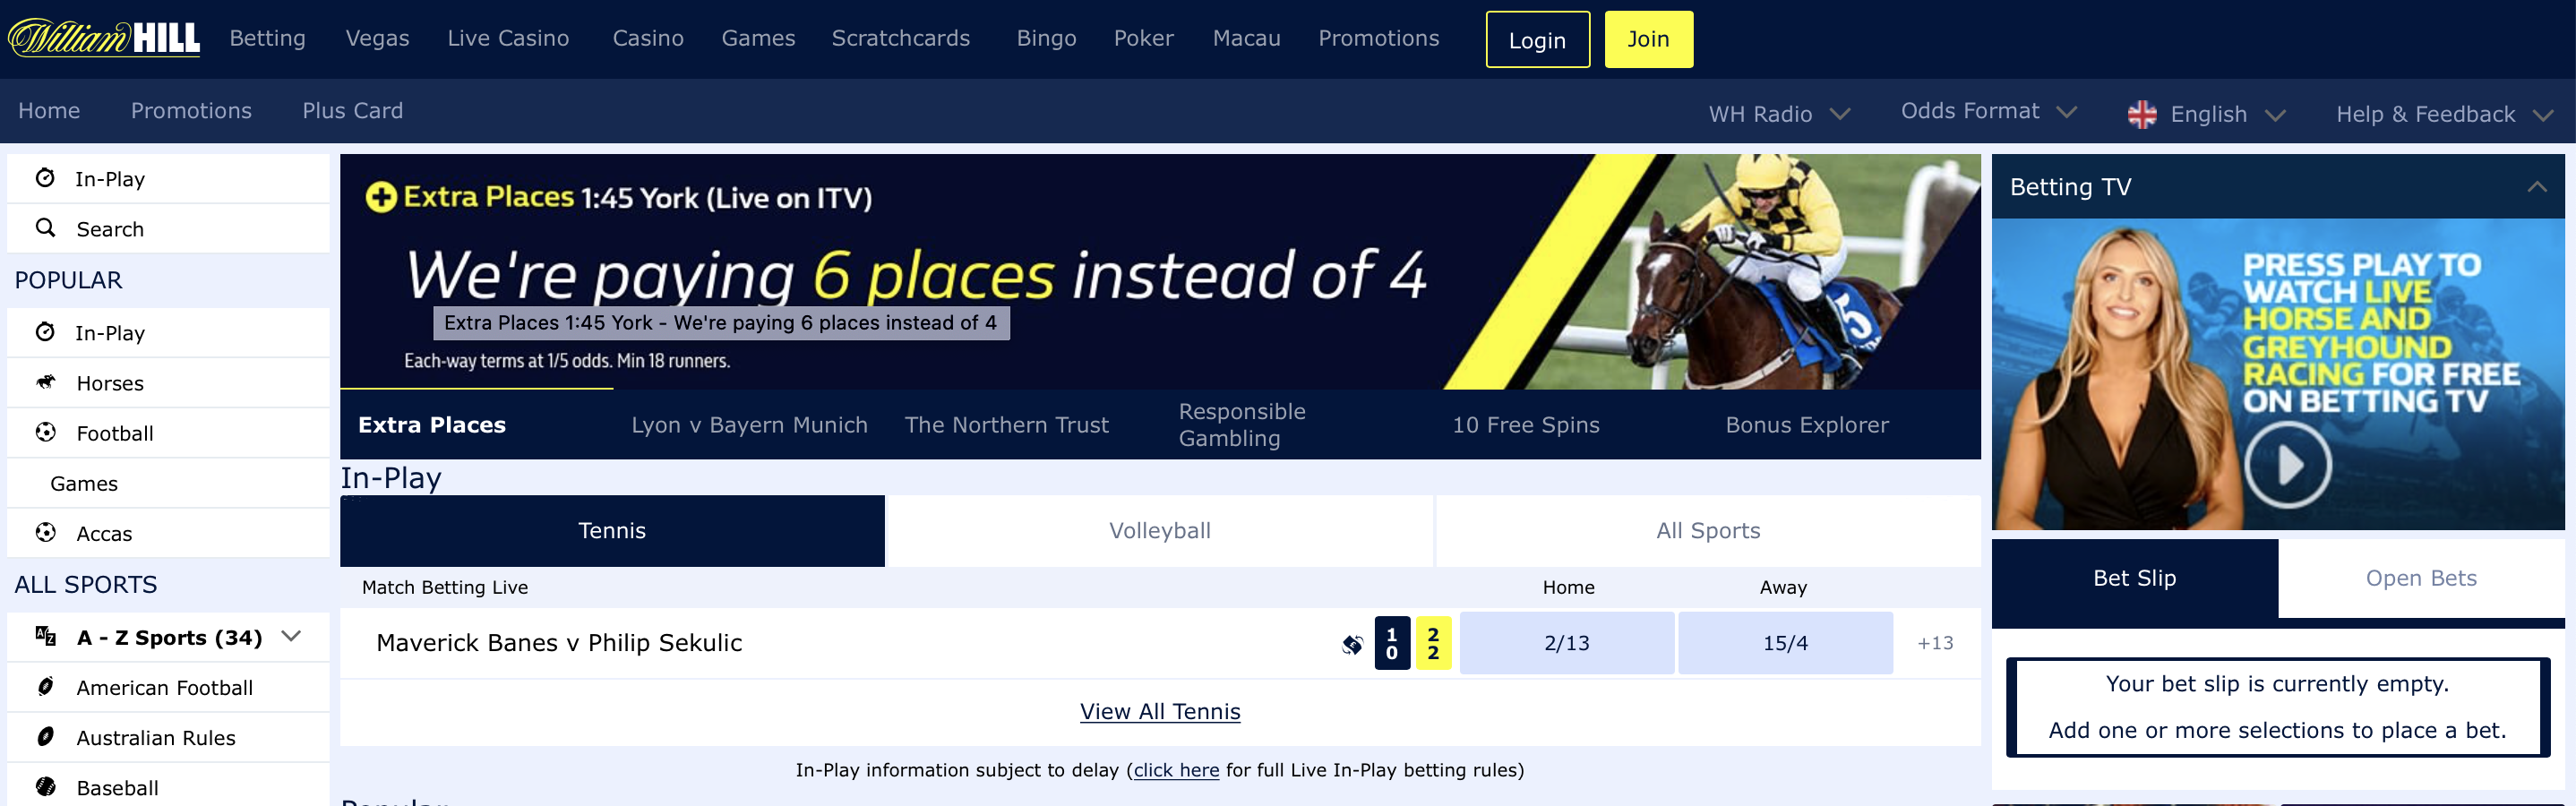 William Hill UK Betting Site